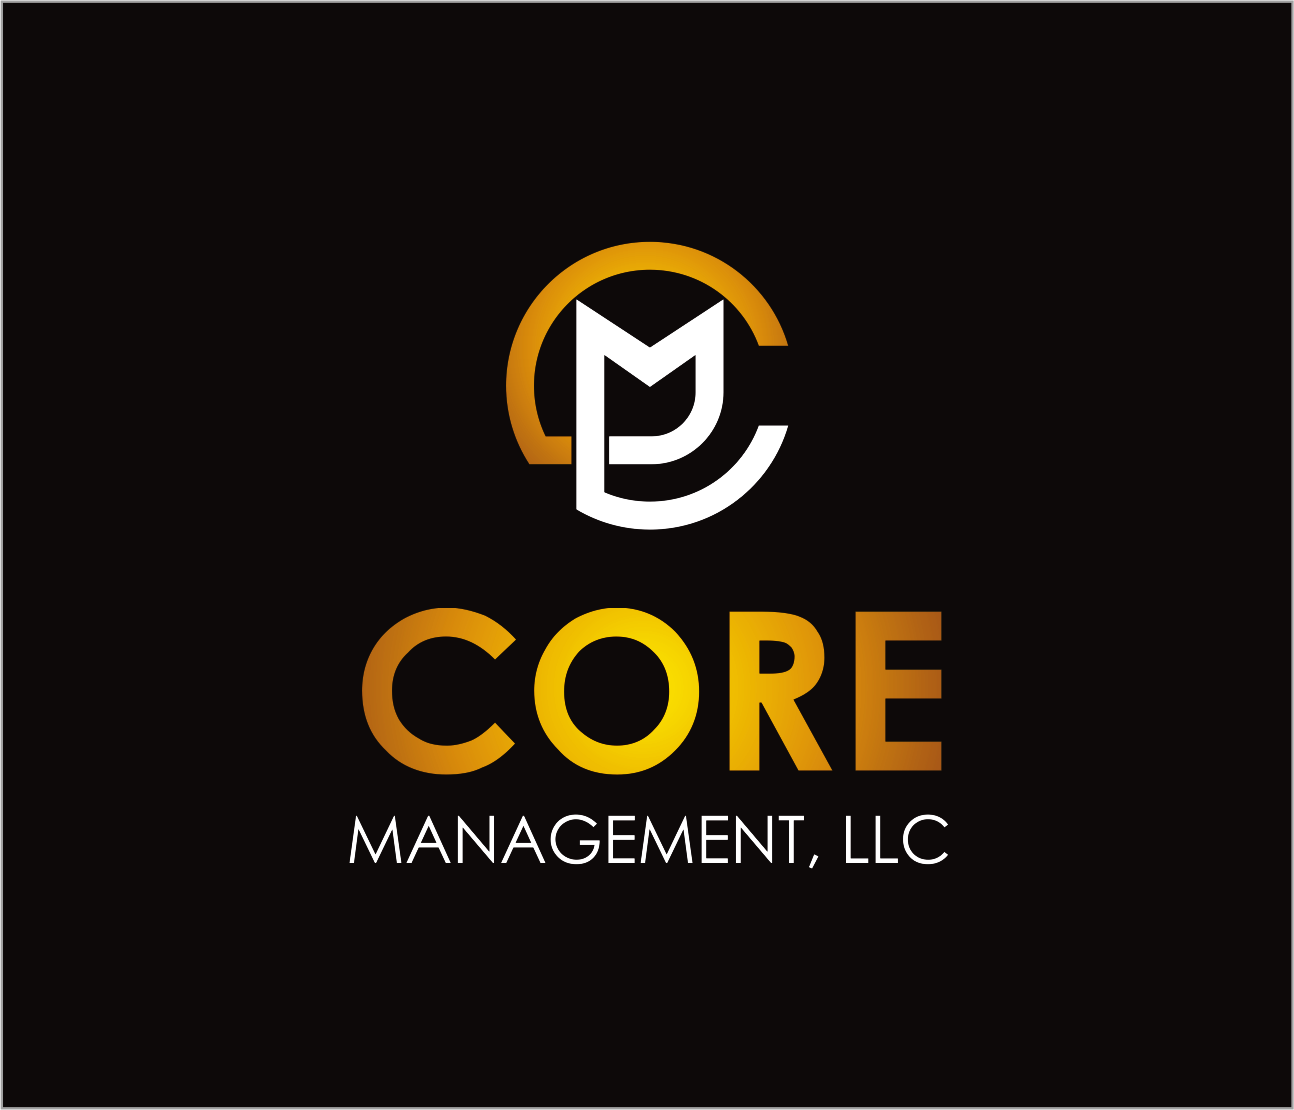 Logo Design by Armada Jamaluddin - Entry No. 166 in the Logo Design Contest Creative Logo Design for CORE Management, LLC.